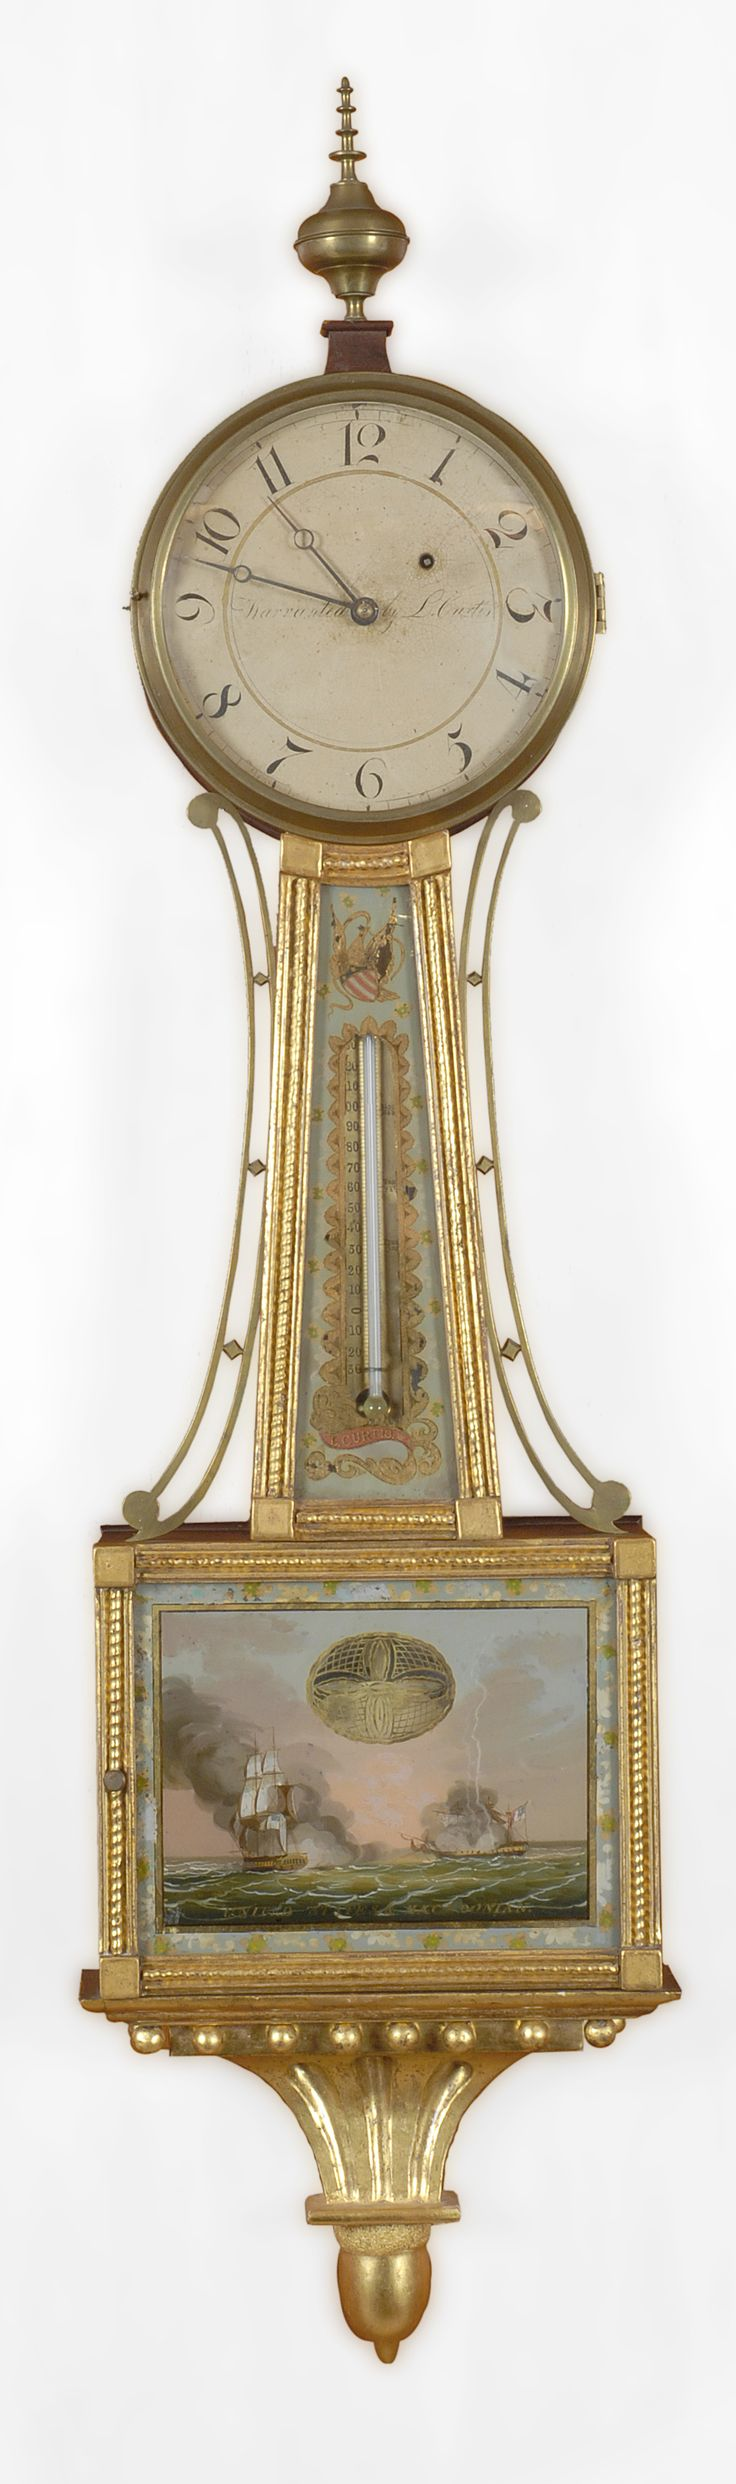 Antiques & Fine Art - Sullivan, Gary R. Antiques - An Important Federal eglomisé presentation patent timepiece with rare thermometer, Lemuel Curtis, Concord, Massachusetts, circa 1815.